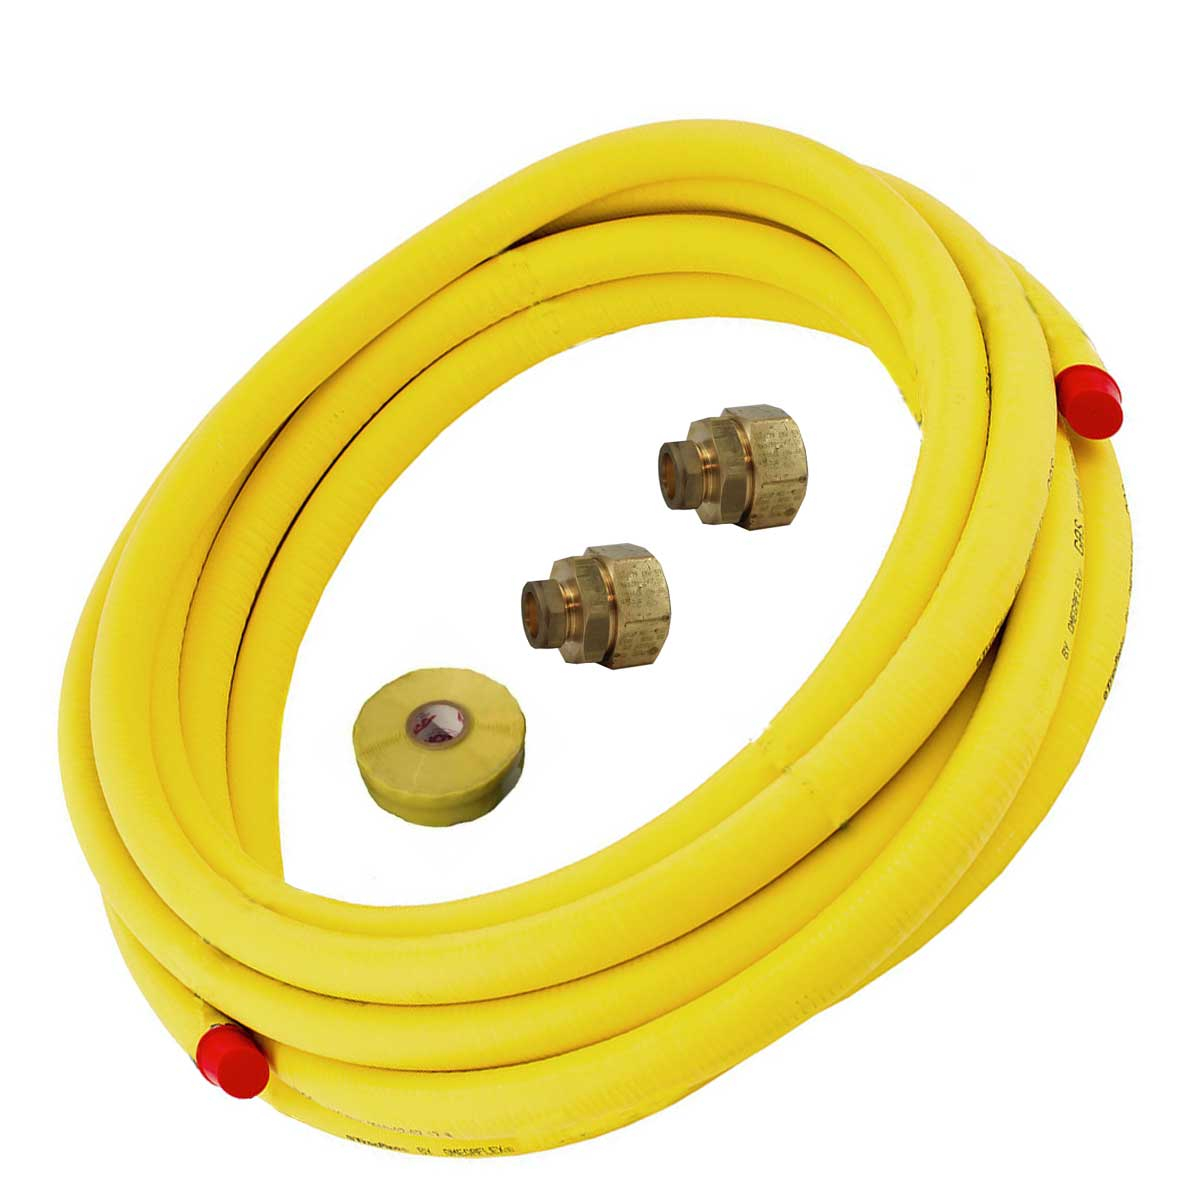 TracPipe 10m Flexible Gas Pipe Fittings and Tape Pack 32mm